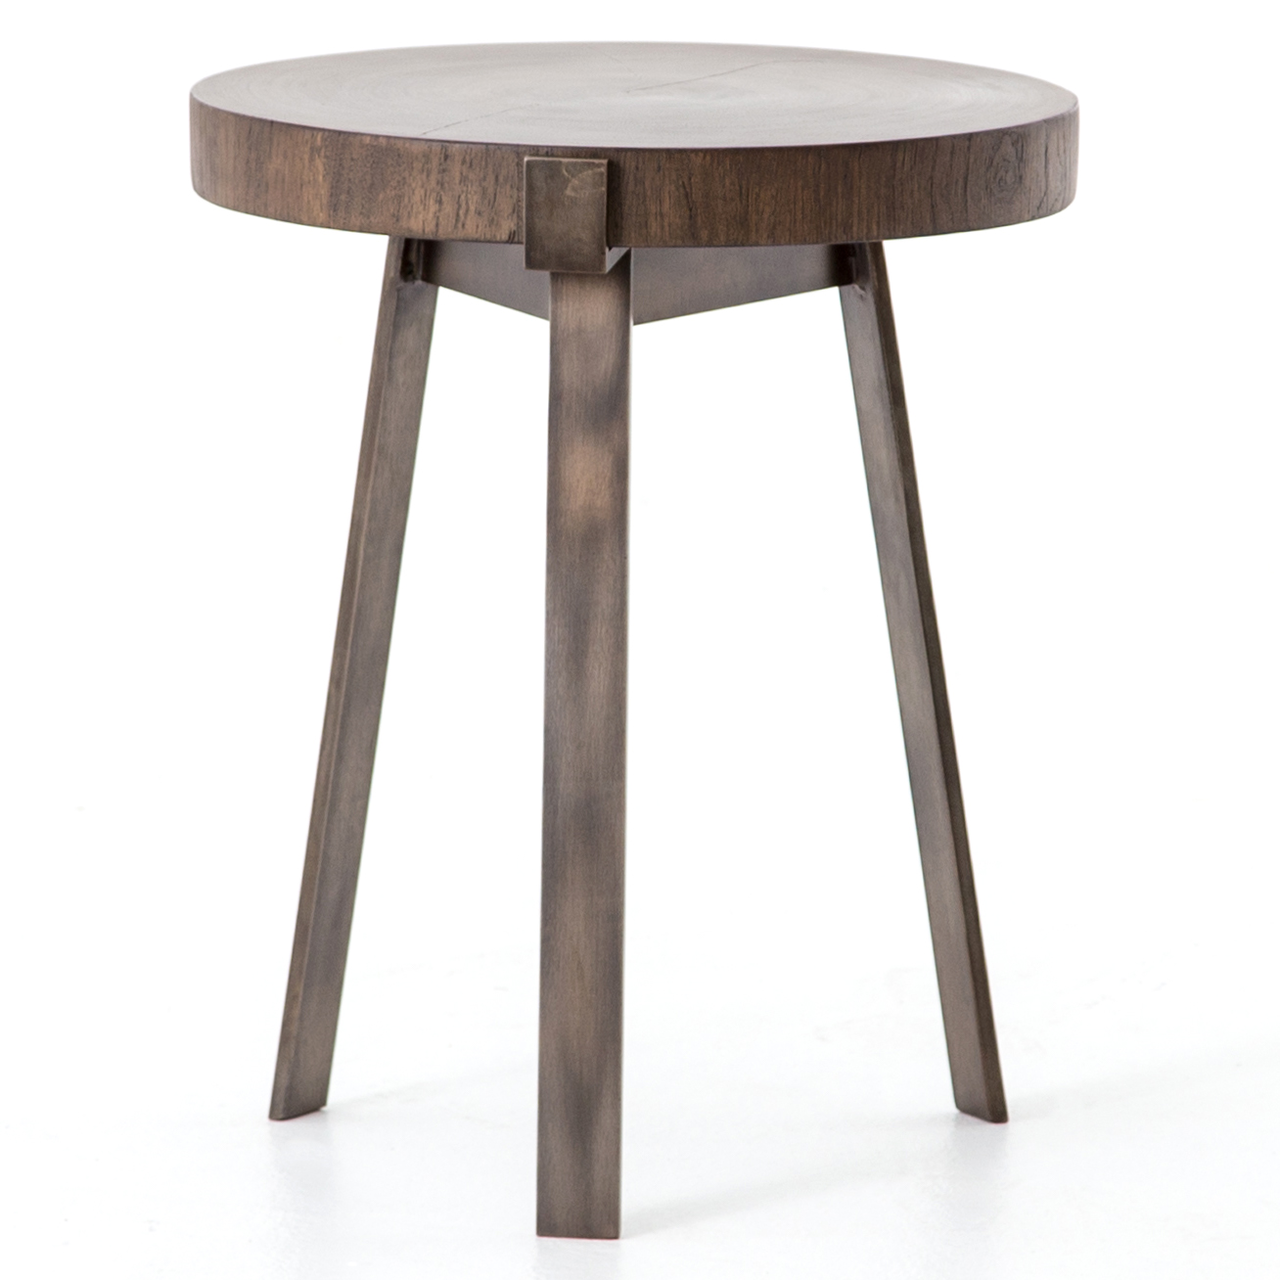 Exeter Smoked Wood + Bronzed Leg Round End Table